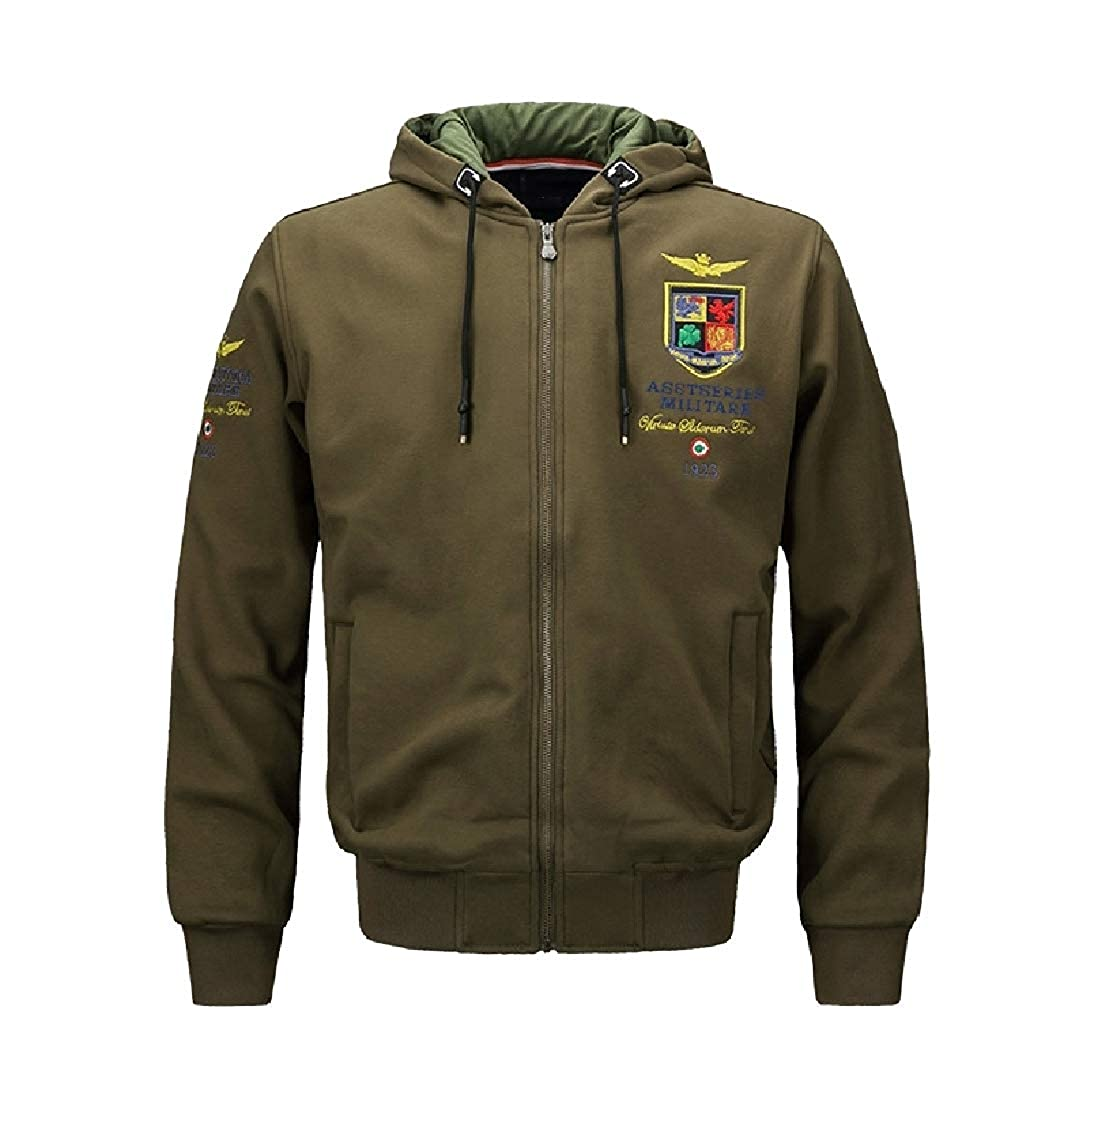 b69c19f299 Army Army Army Green Freely Men's Hood Leisure Athletic Embroidery Cotton  Coat Jacket bf1a14